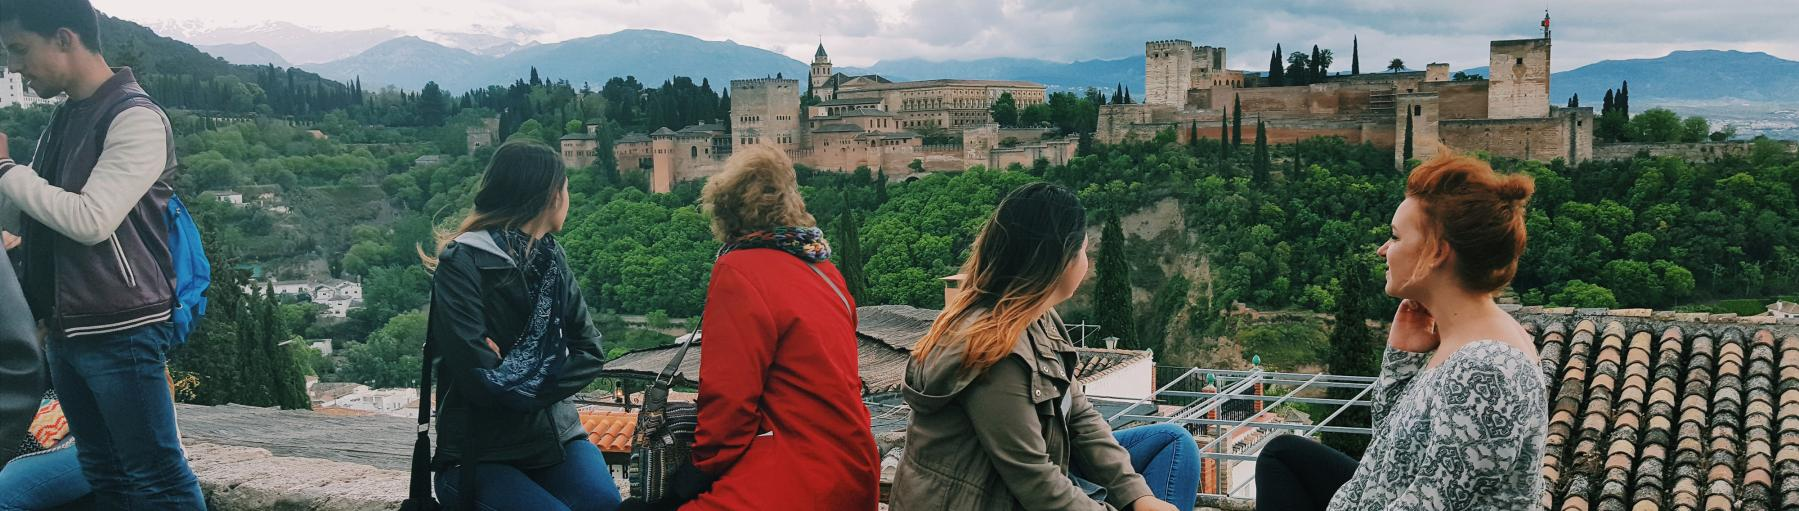 Study Abroad | Dominican University